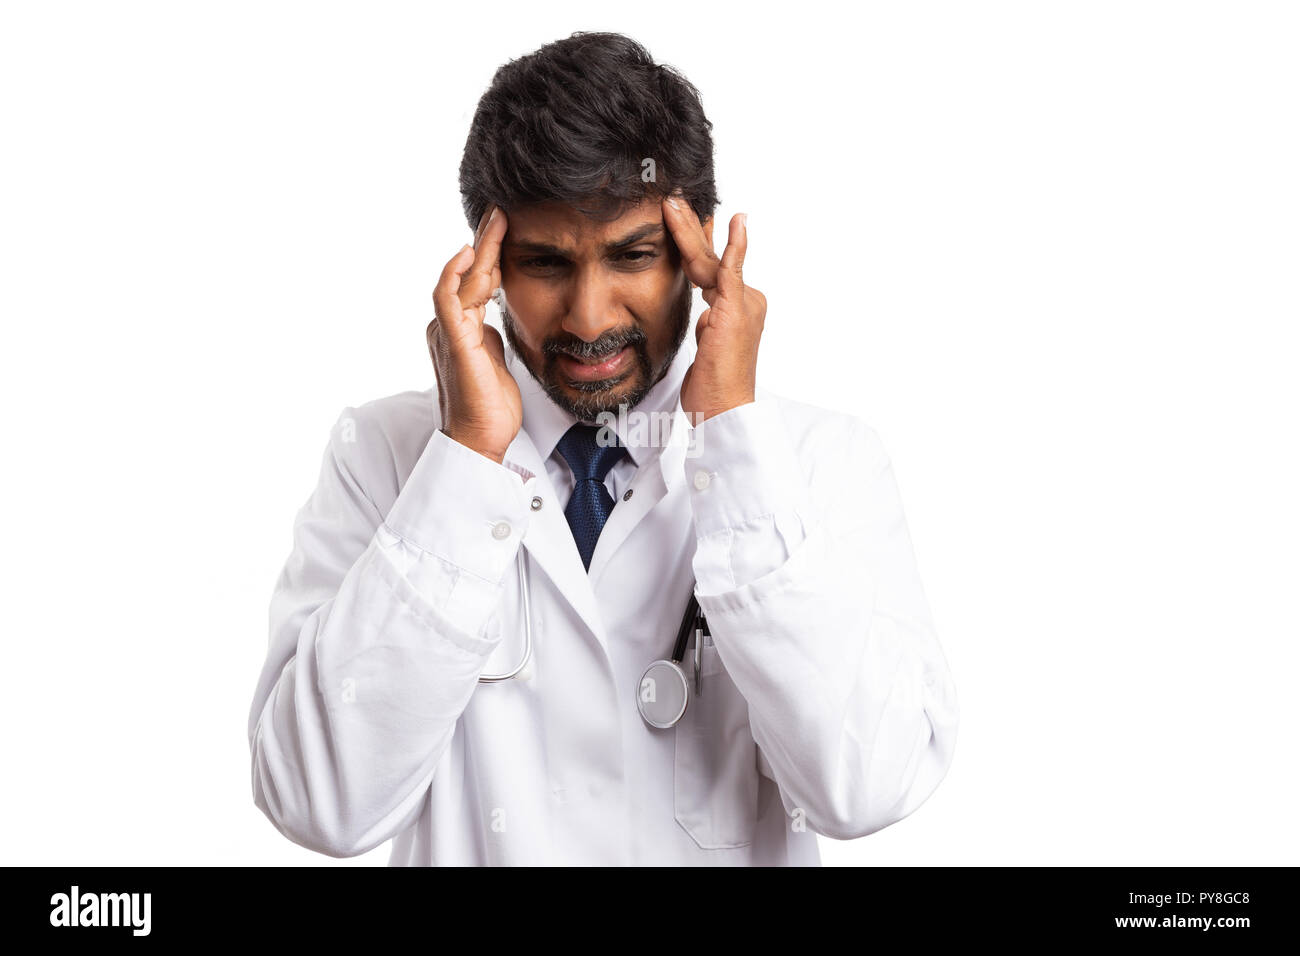 Indian doctor touching forehead with fingers as hurtful headache gesture isolated on white background - Stock Image